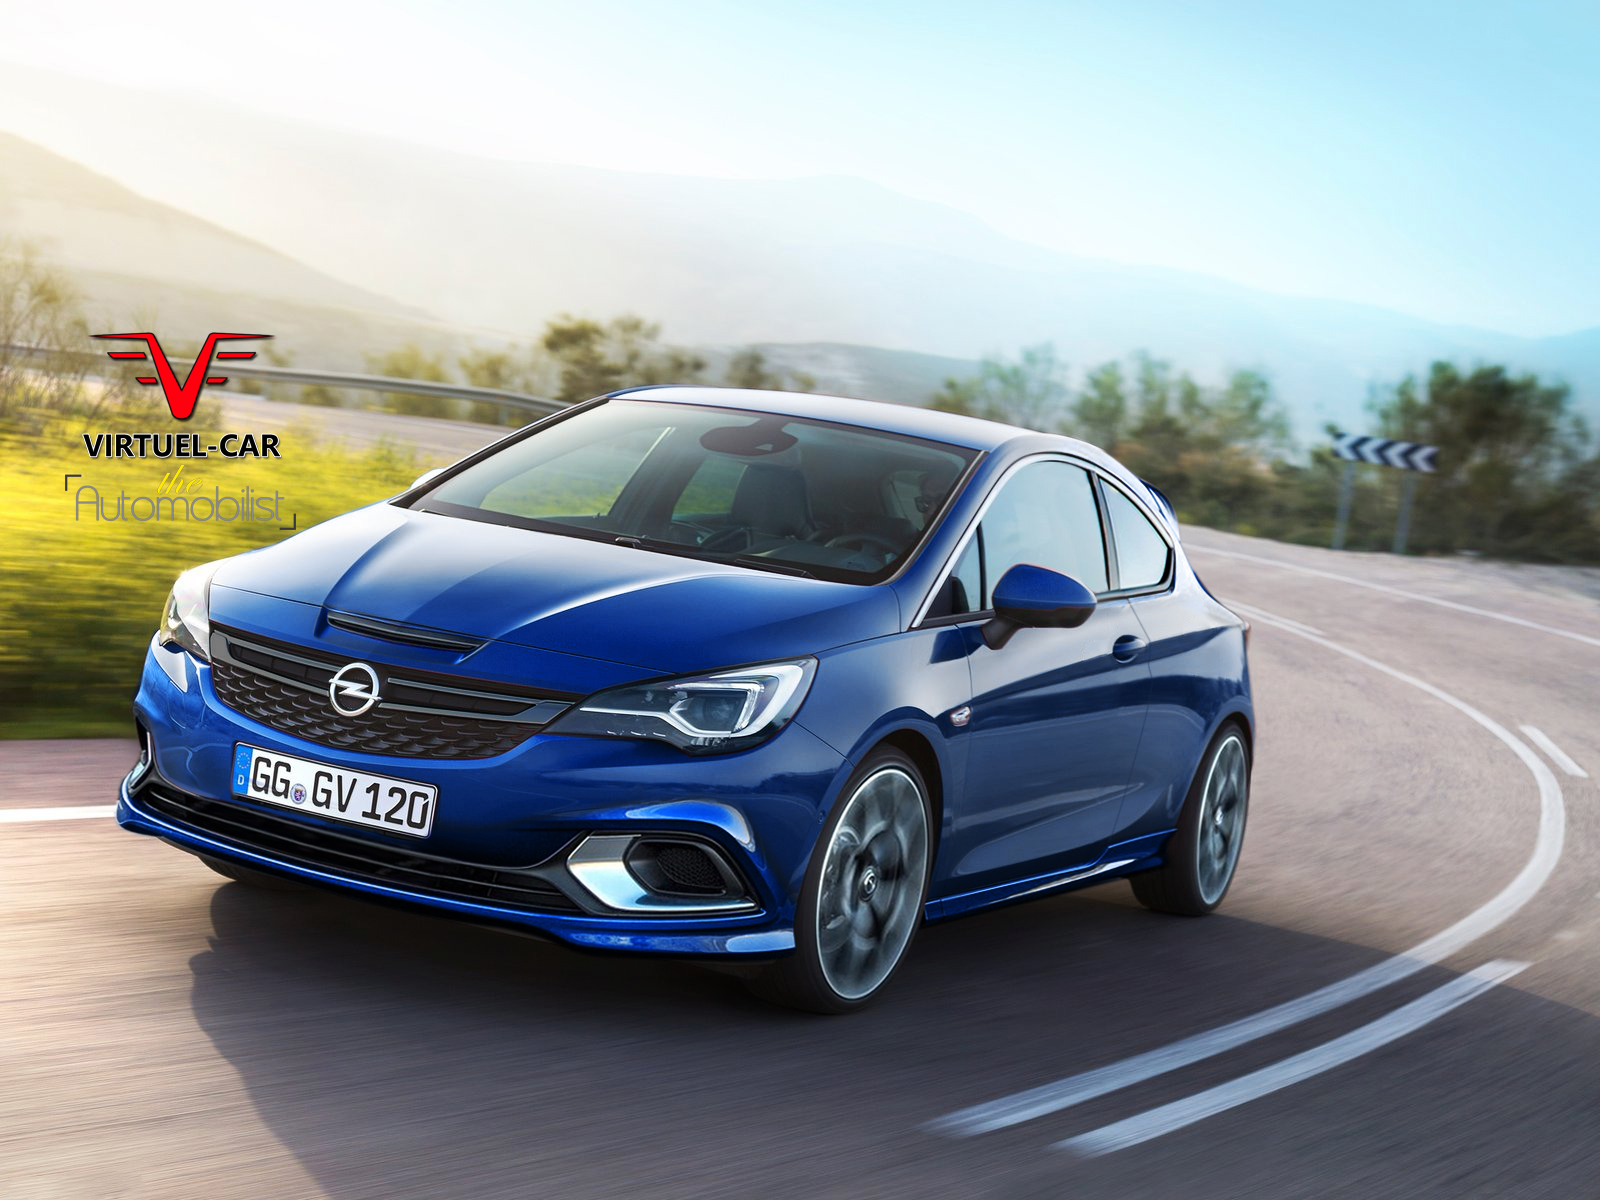 2017 Opel Astra Opc Rendered Could Use Tuned 1 6 Liter Turbo